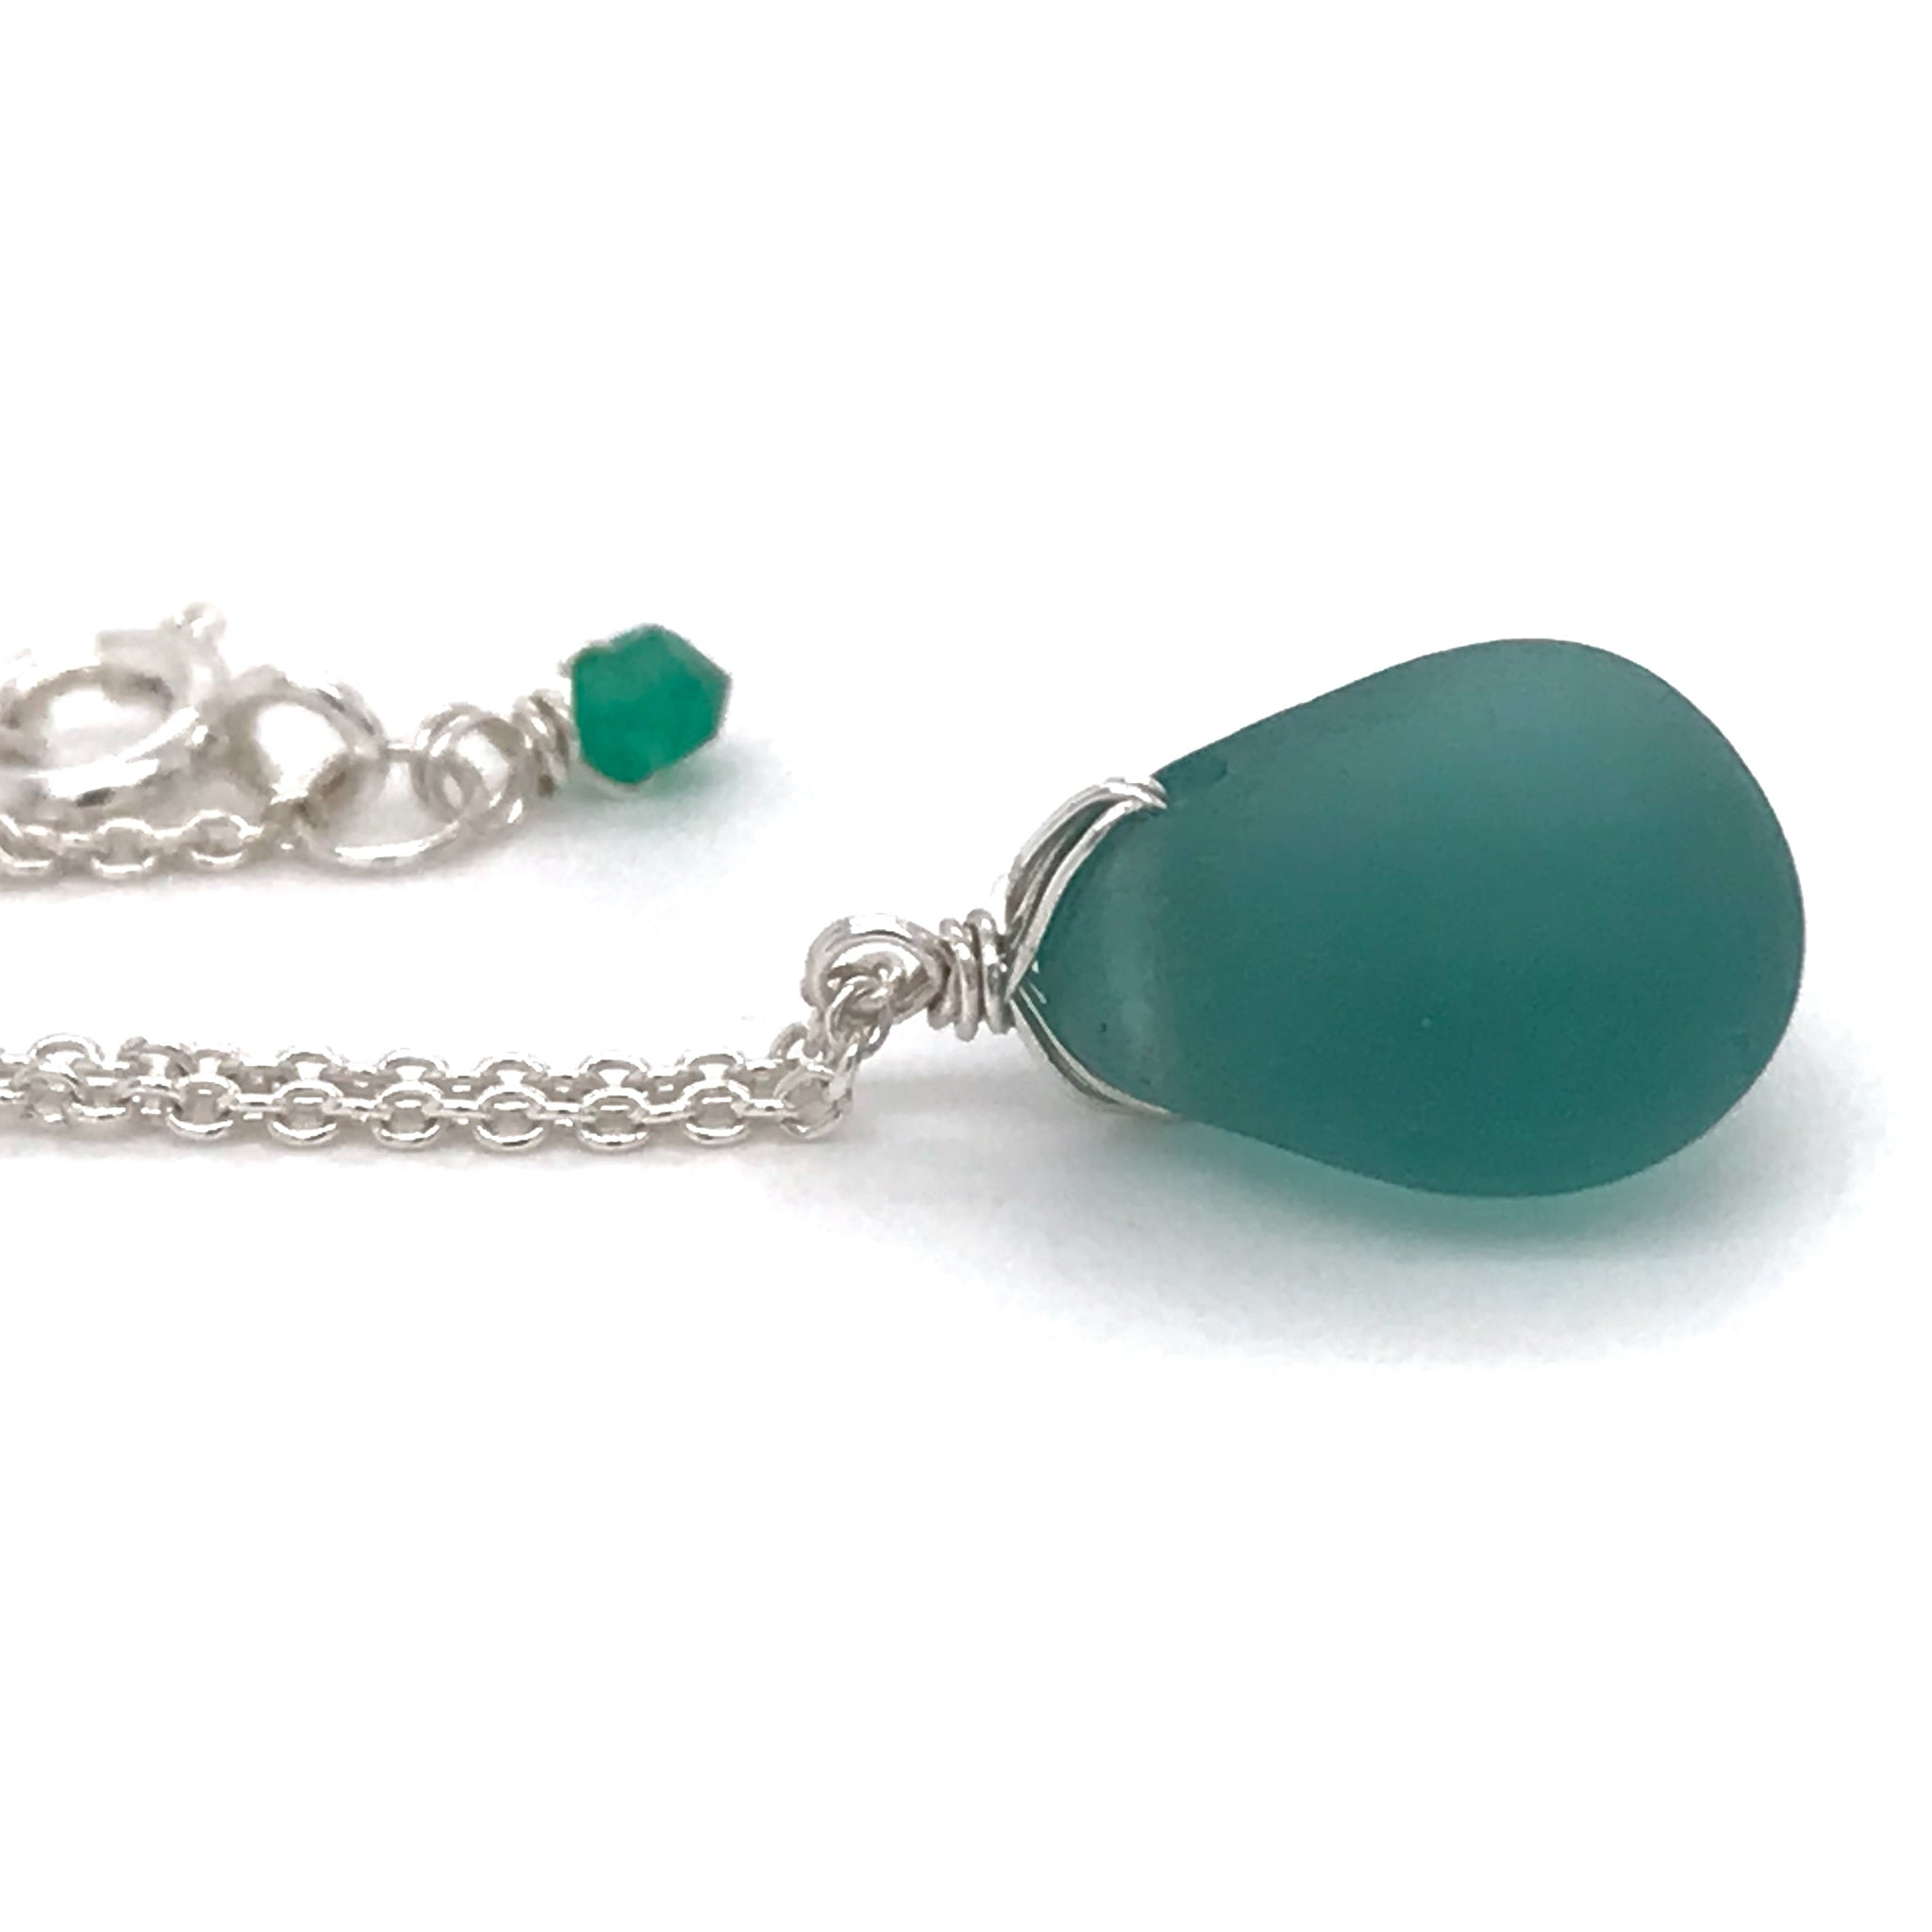 seaglass necklace made in Sydney